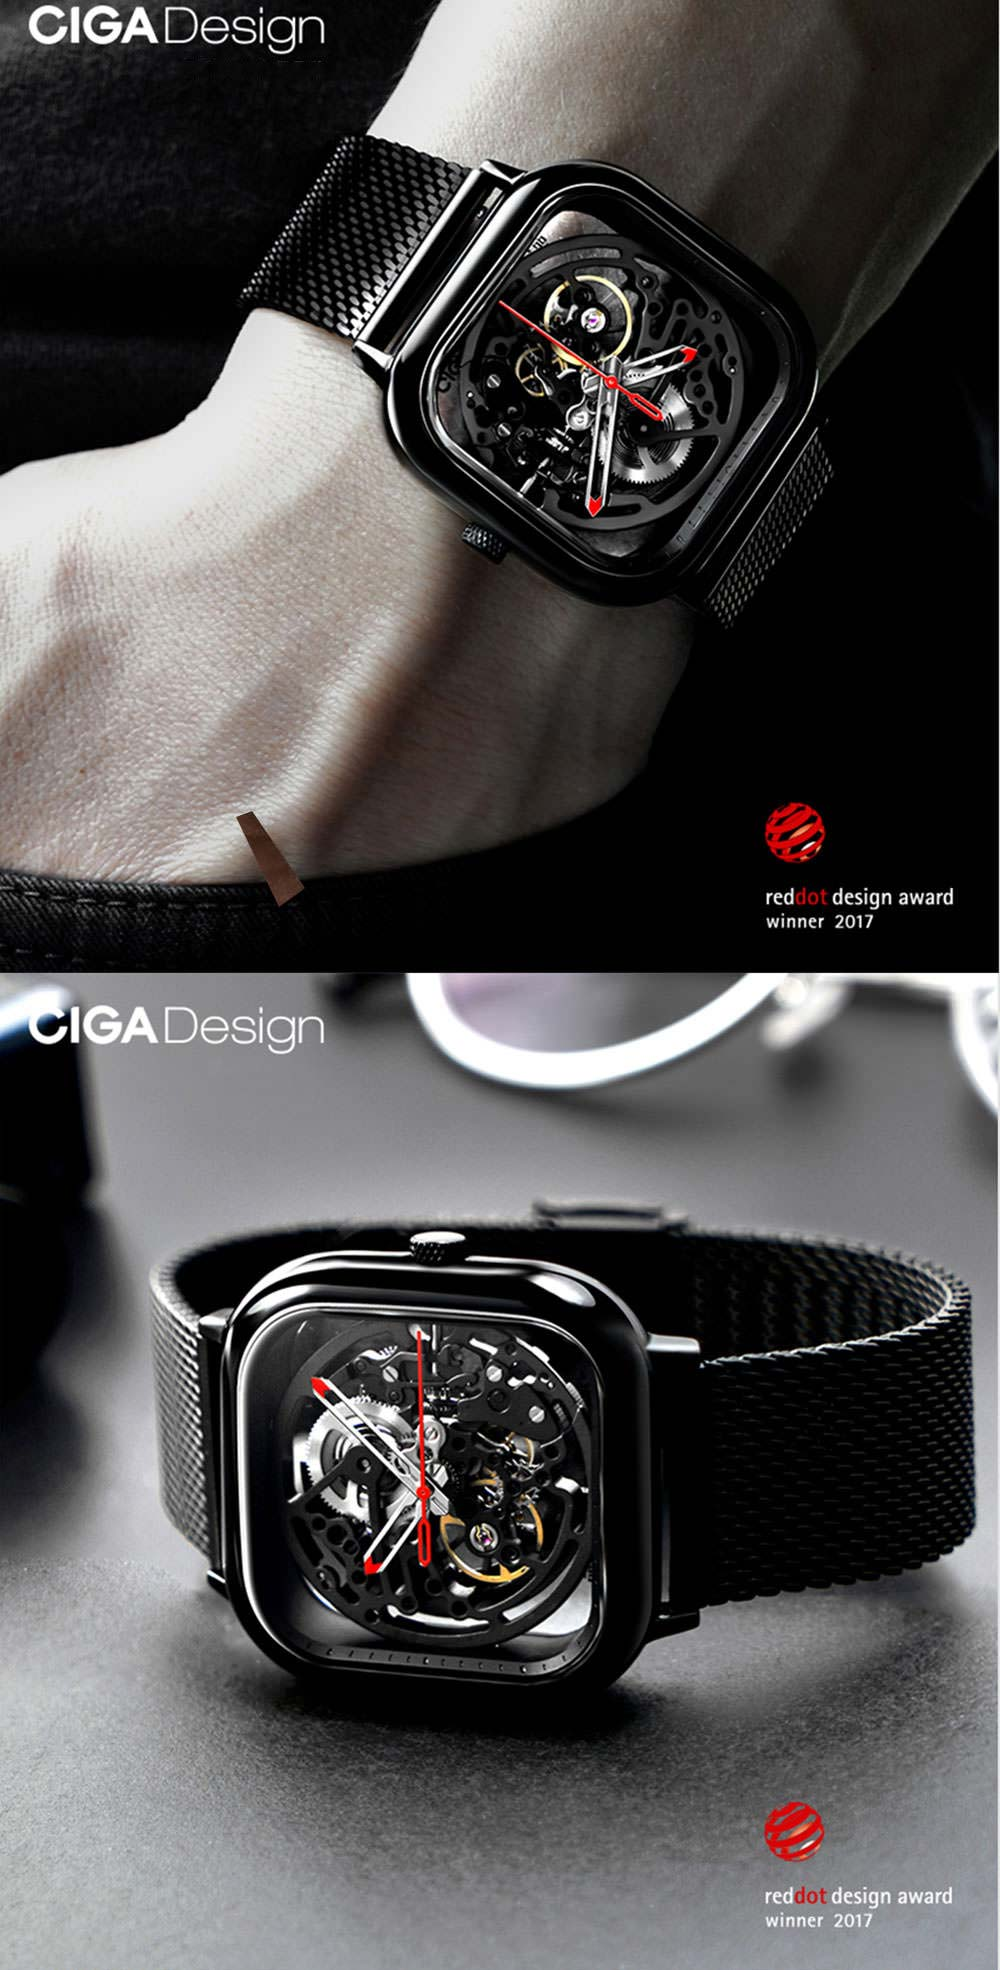 ciga design mechanical watch sale